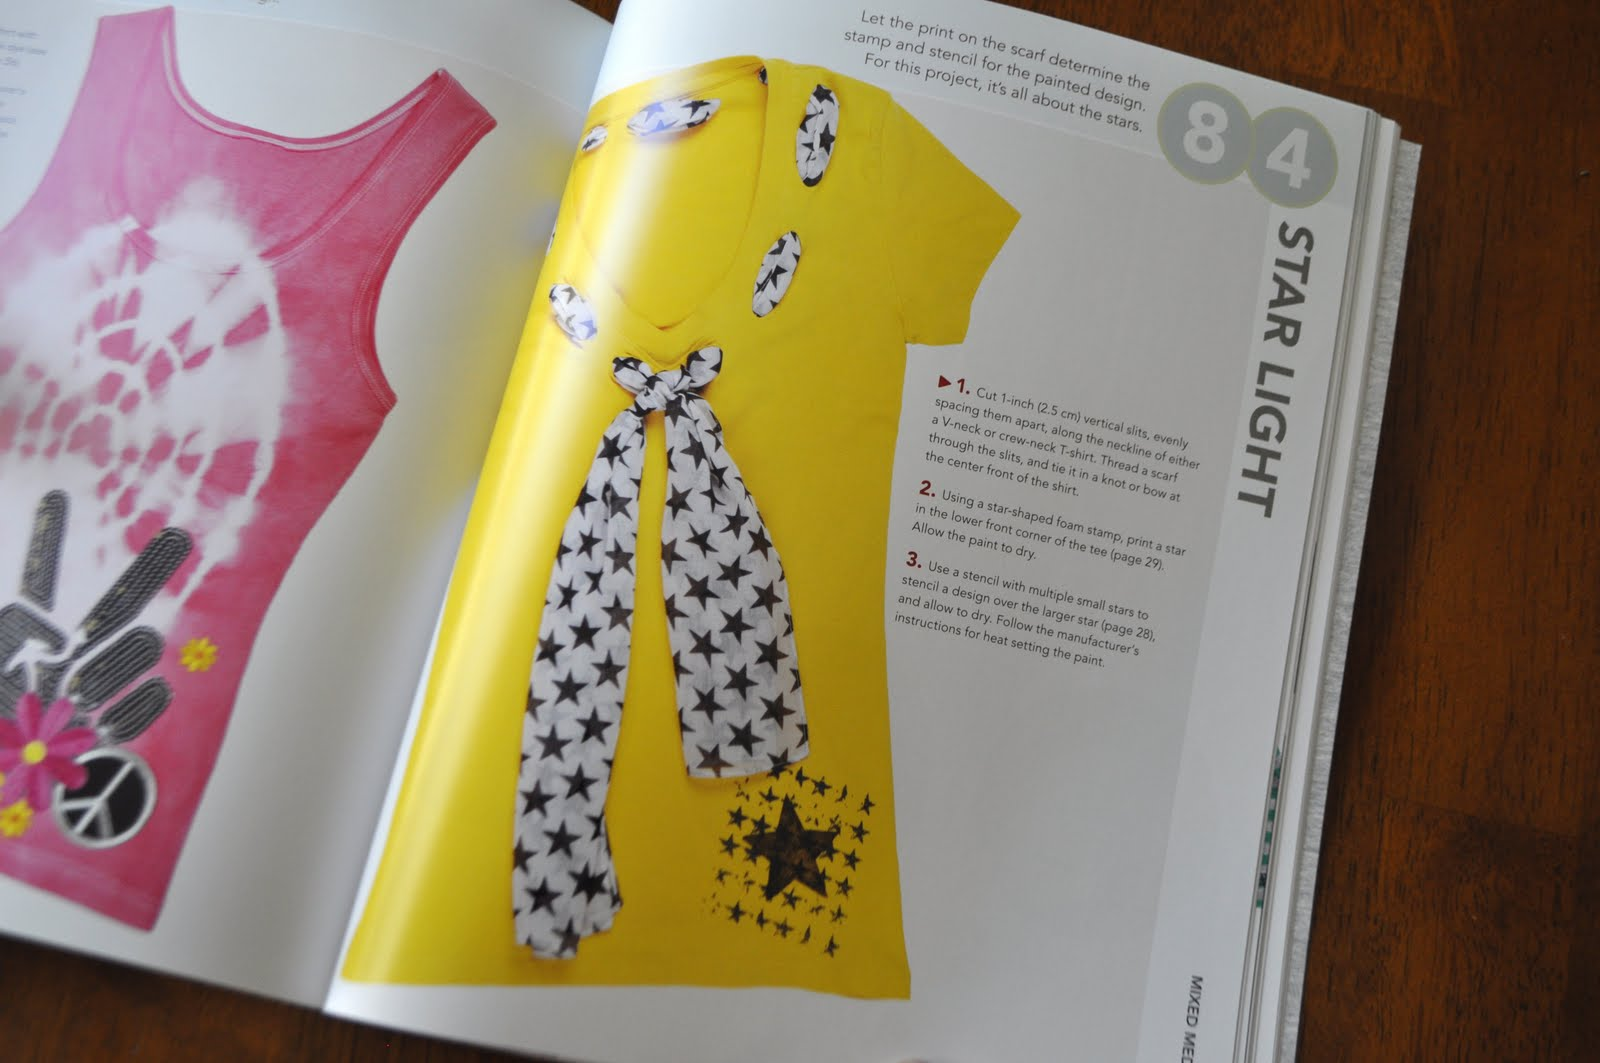 Shirt design near me -  I Would Recommend Making Much Smaller Slits Than Indicated I Sewed The Shirt And Scarf Near The Slits Because The Slits Were Too Large